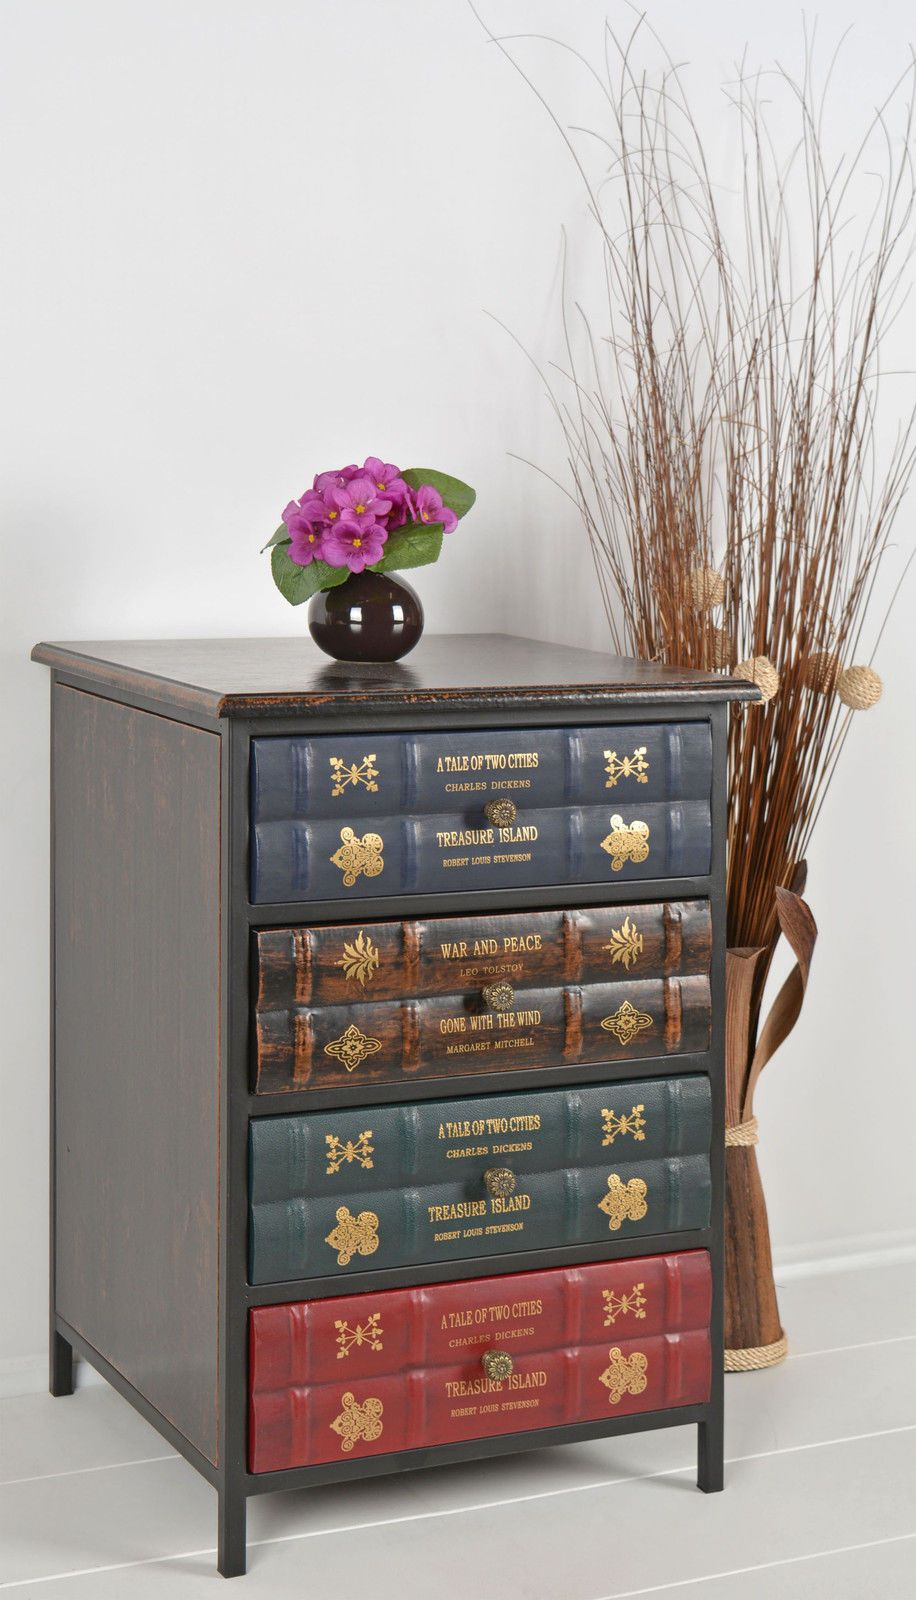 Chest Drawers Cabinet Bedside Table Cupboard Antique Book Vintage Look Design For Sale  E  A